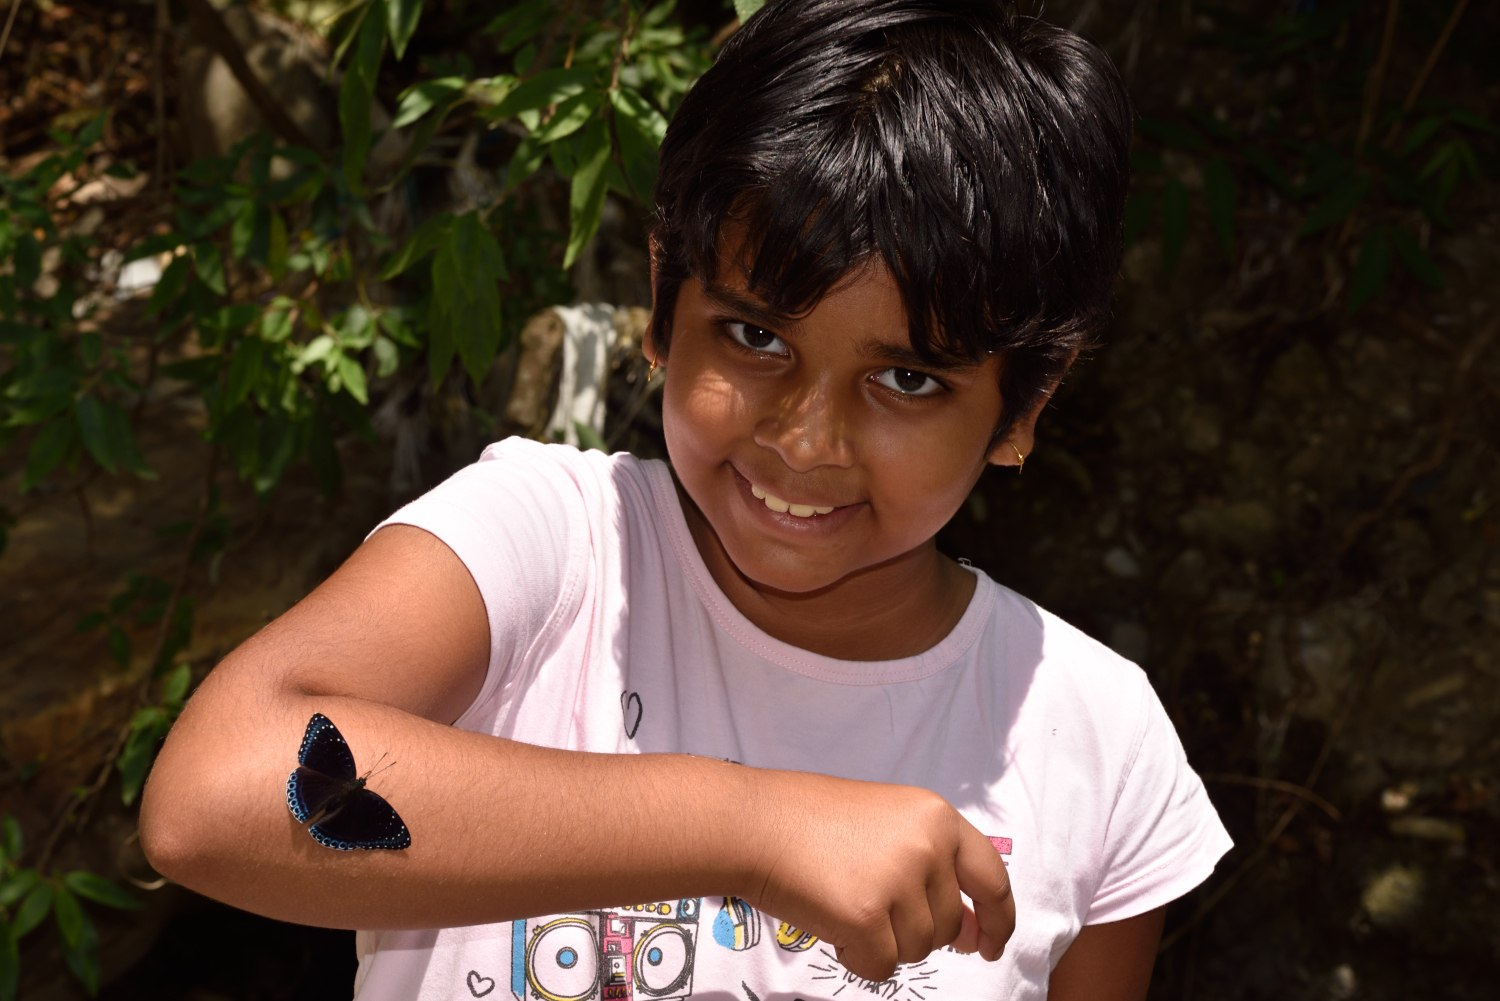 The butterfly festivals encourage young children to get involved. Eleven-year-old Gargi enthusiastically poses with a popinjay on her arm. Photo: Sanjay Sondhi